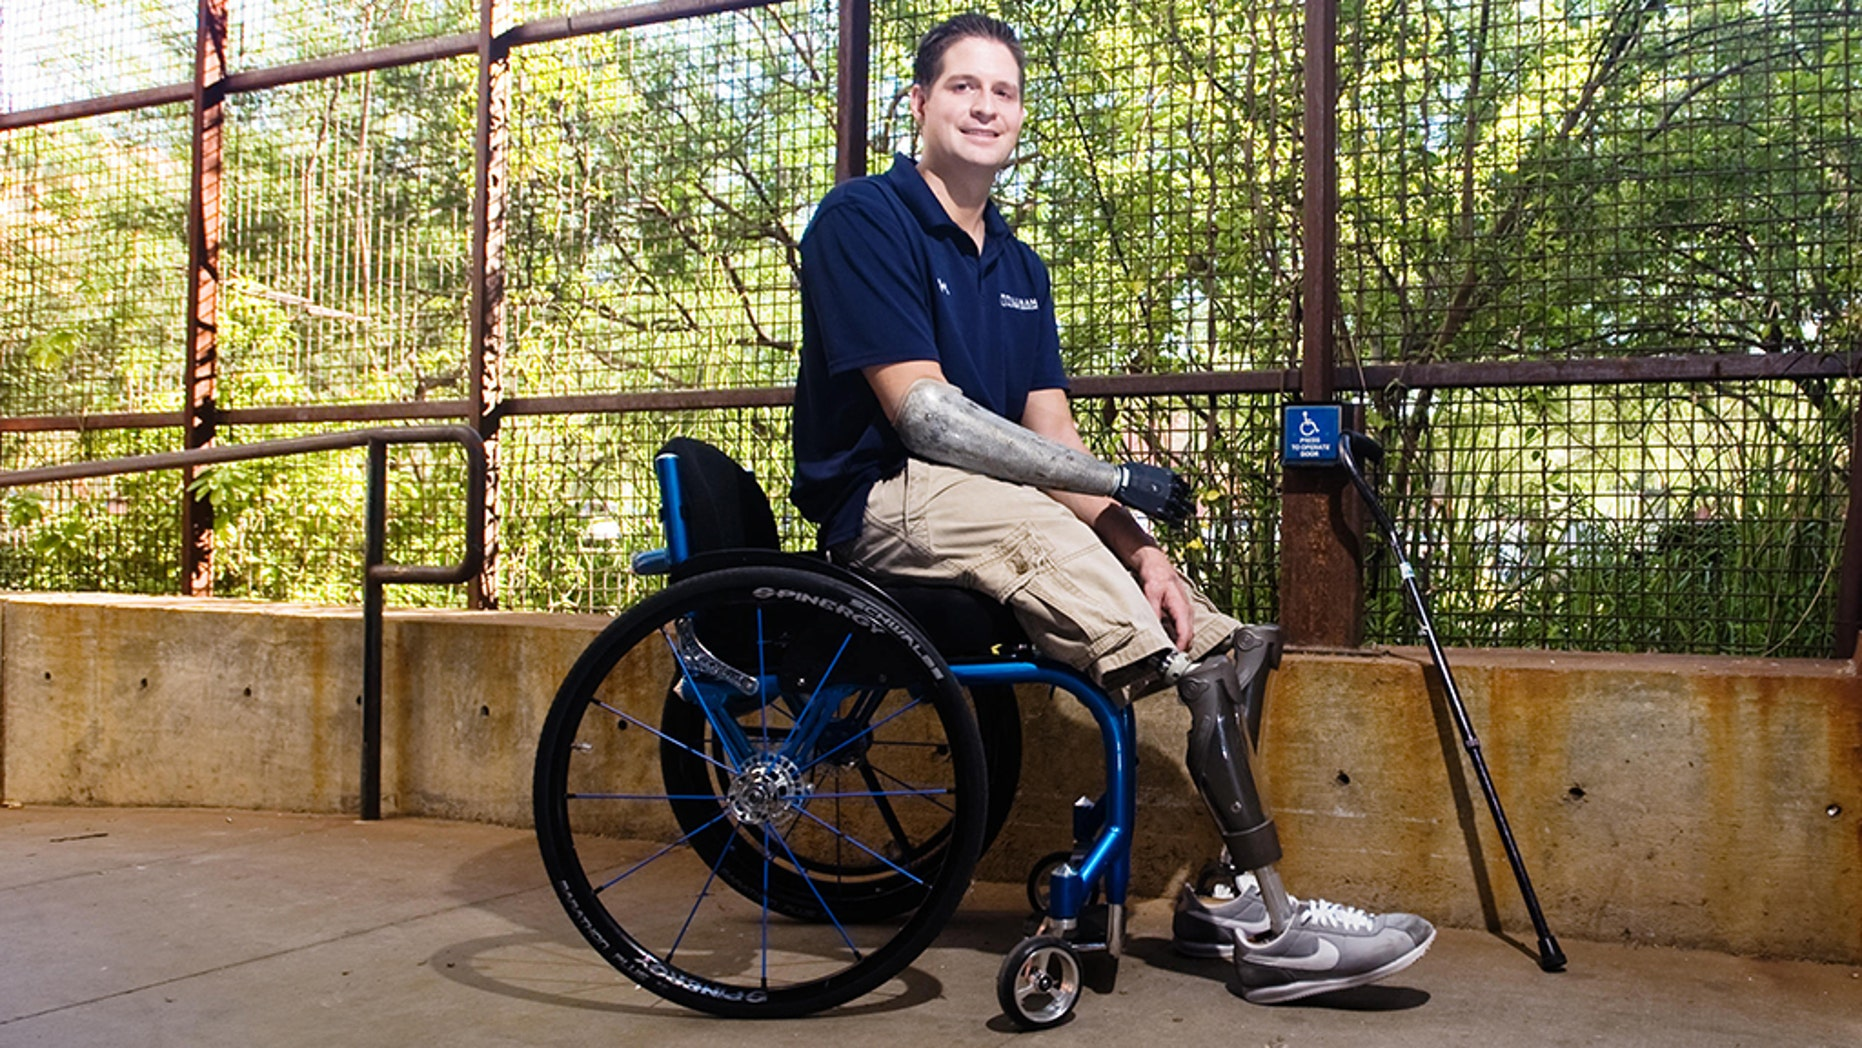 Air Force veteran and triple amputee Brian Kolfage, 37, said Wednesday that donors have given $7 million to his new idea: privately building the wall. (Will Seberger/ZUMAPRESS.com)